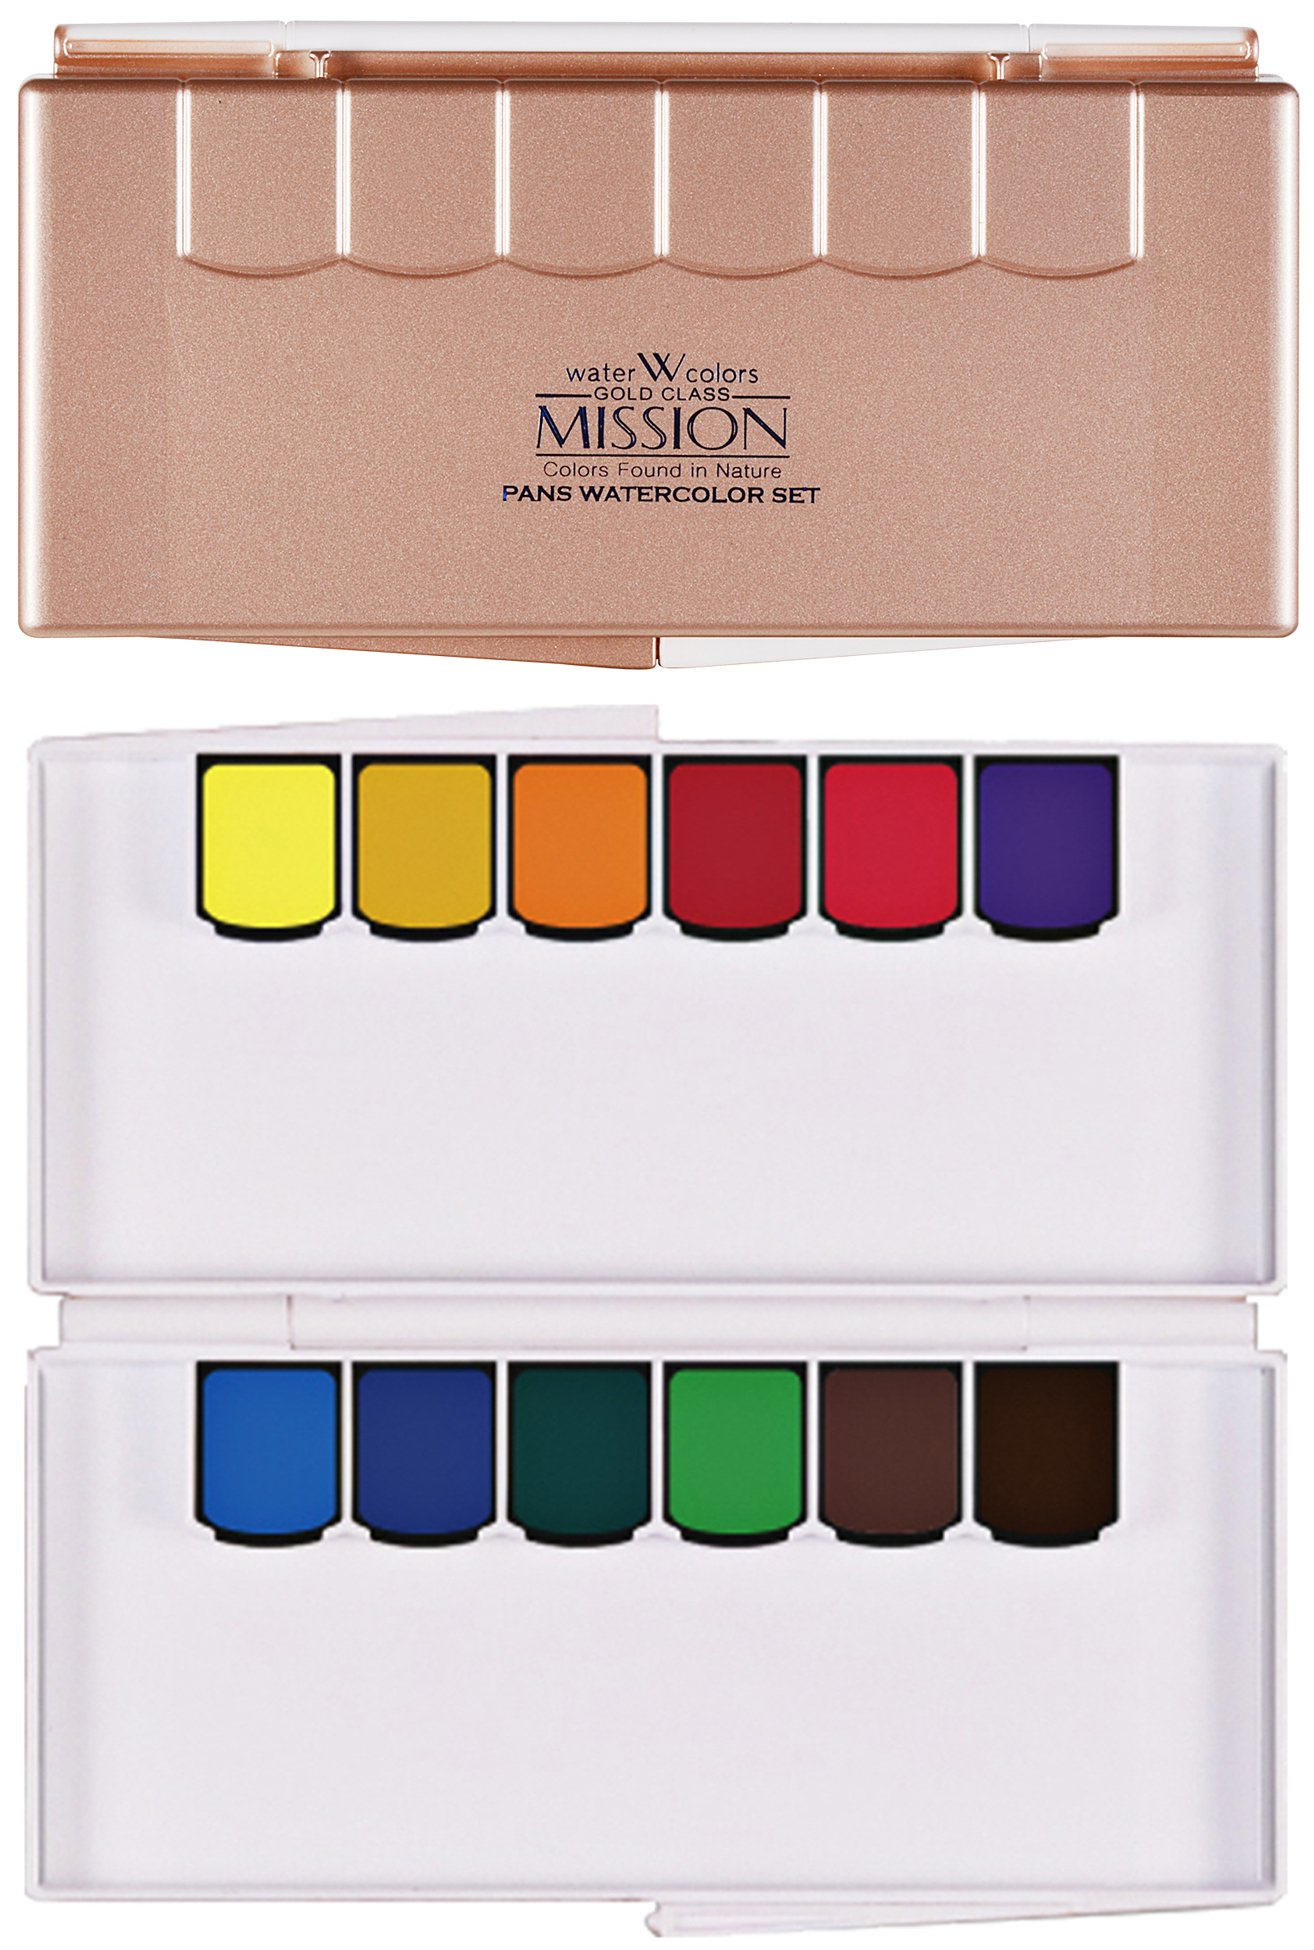 CrushOn@ Mission Gold Pan Watercolor Set Compact Size with Water Brush by CrushOn (Gold Pan 12 Colors) by Mission